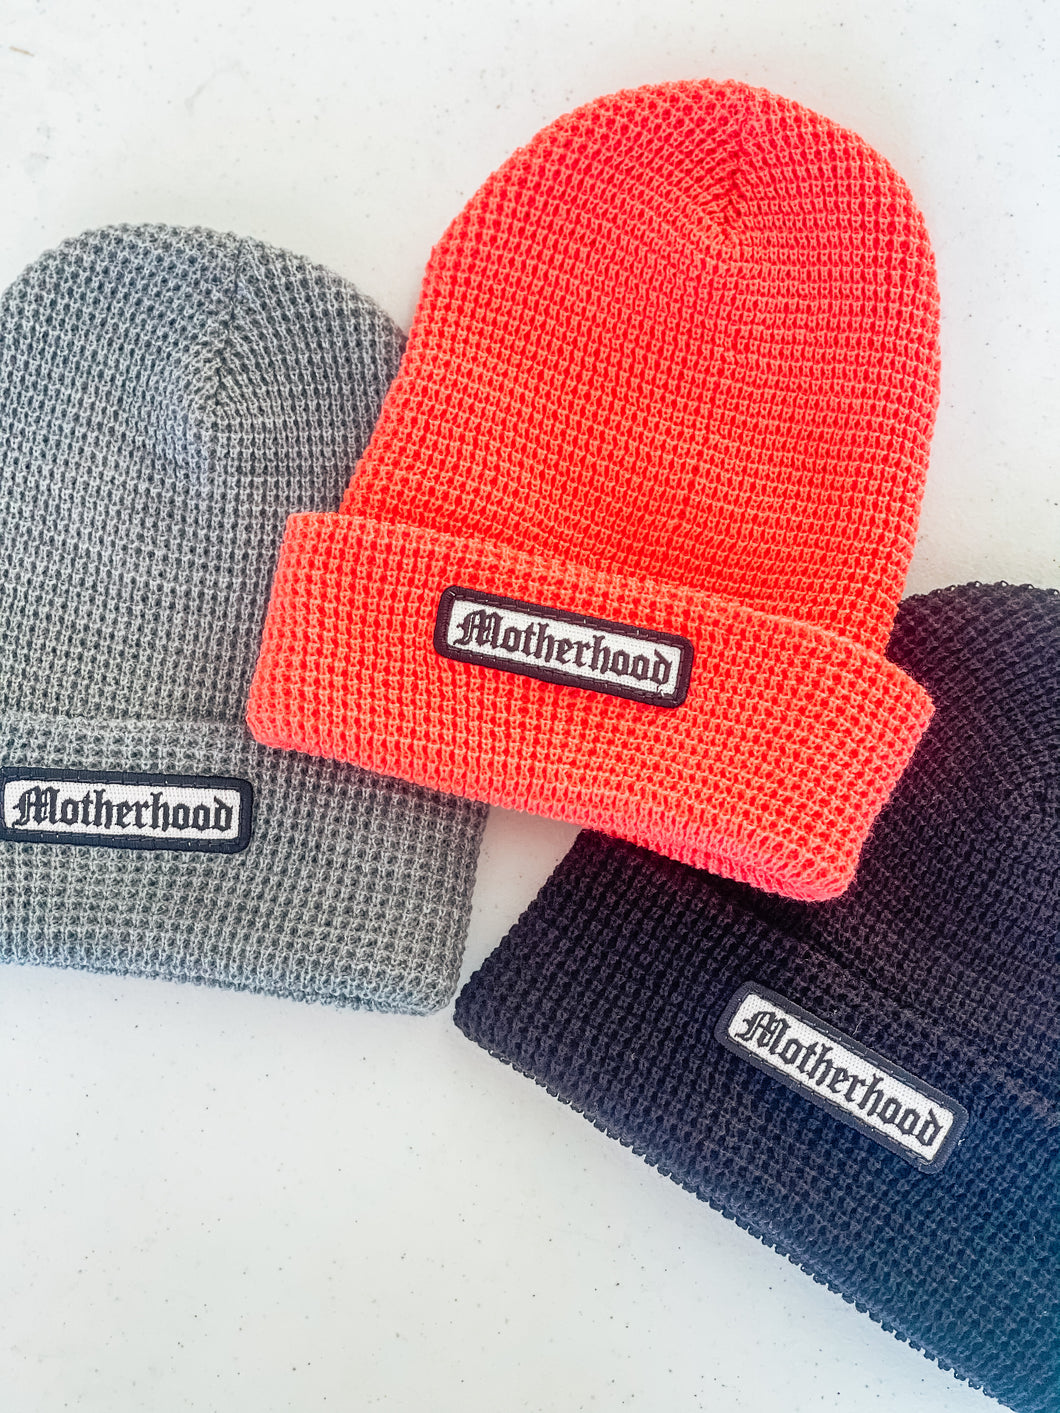 Motherhood Beanies